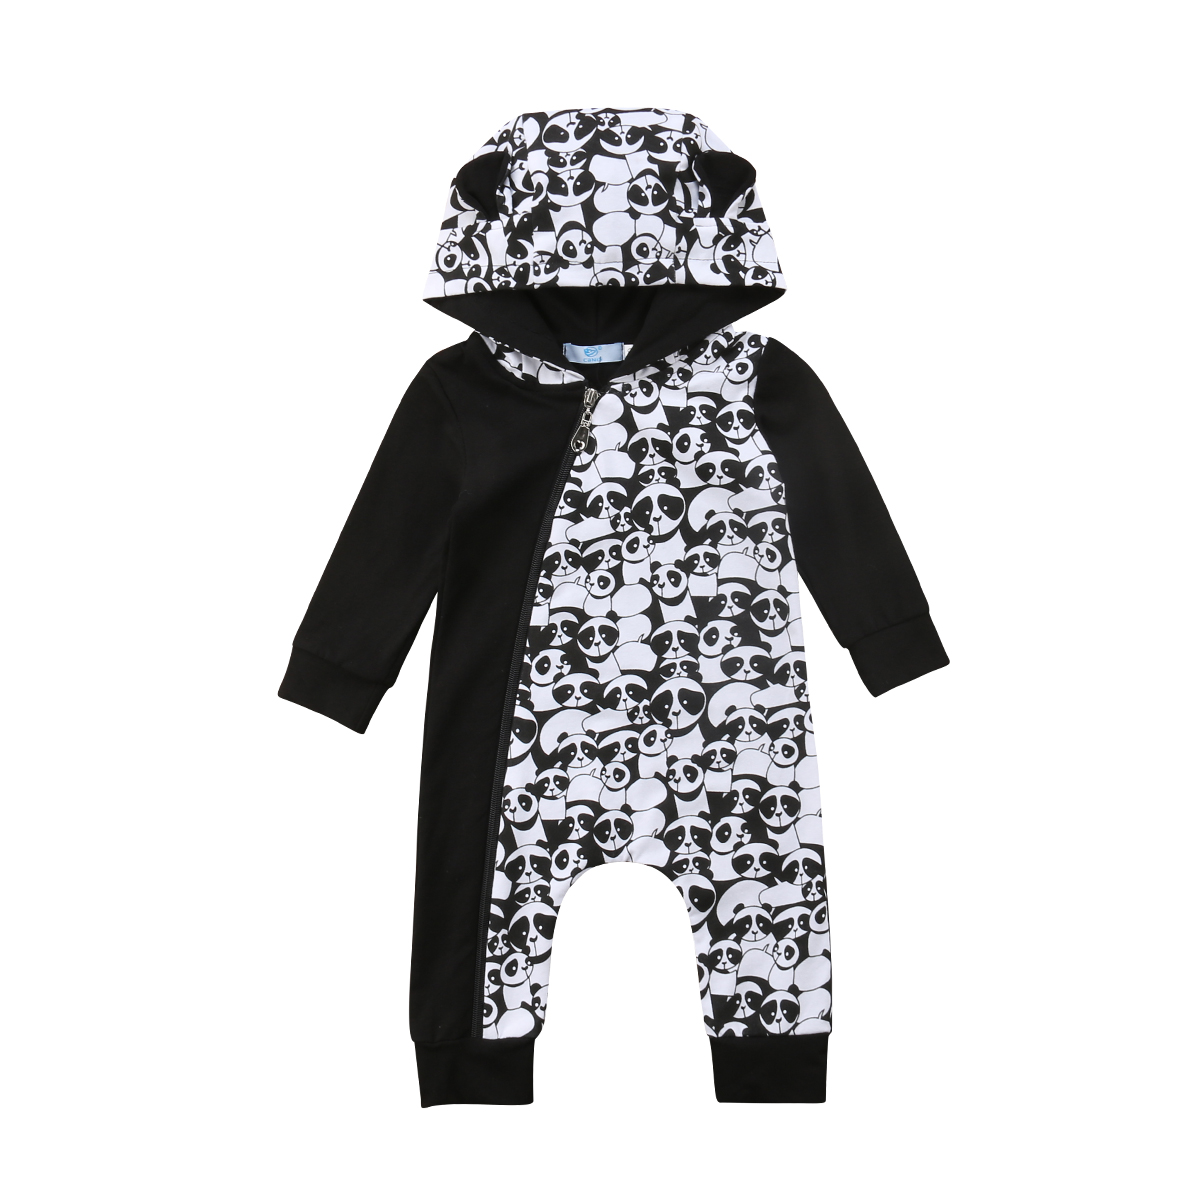 Autumn New Arrival Infant Baby Boy Girl Panda Clothes Hooded Jumpsuit Romper Outfit Long Sleeve Infant Set